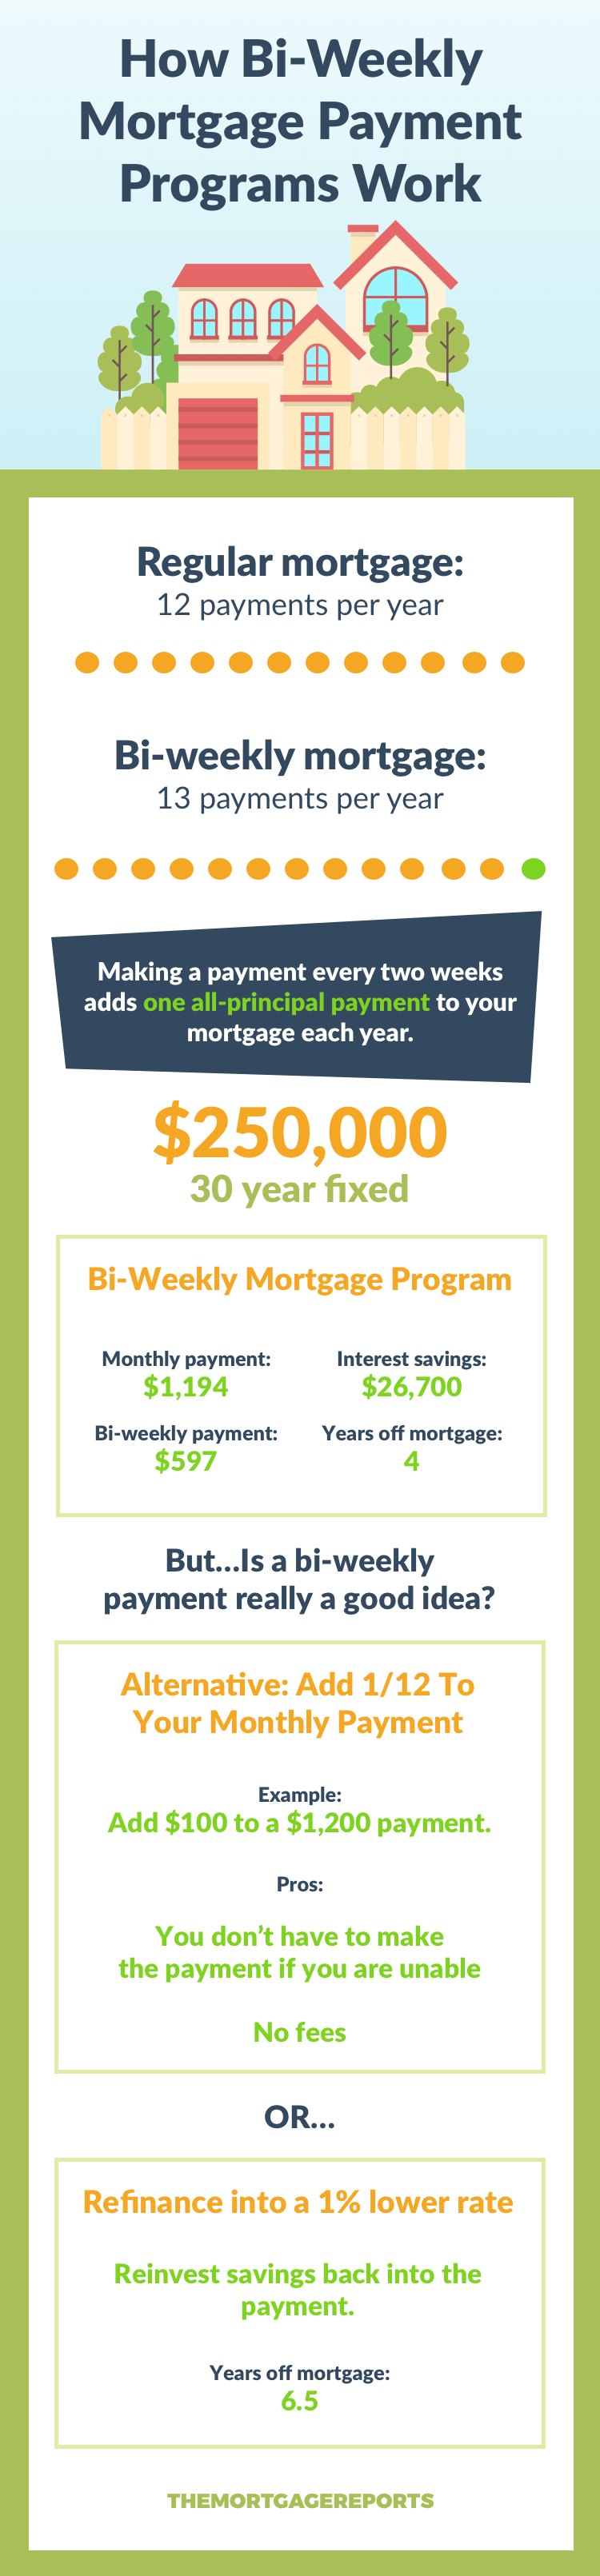 Bi-Weekly Mortgage Payment Infographic